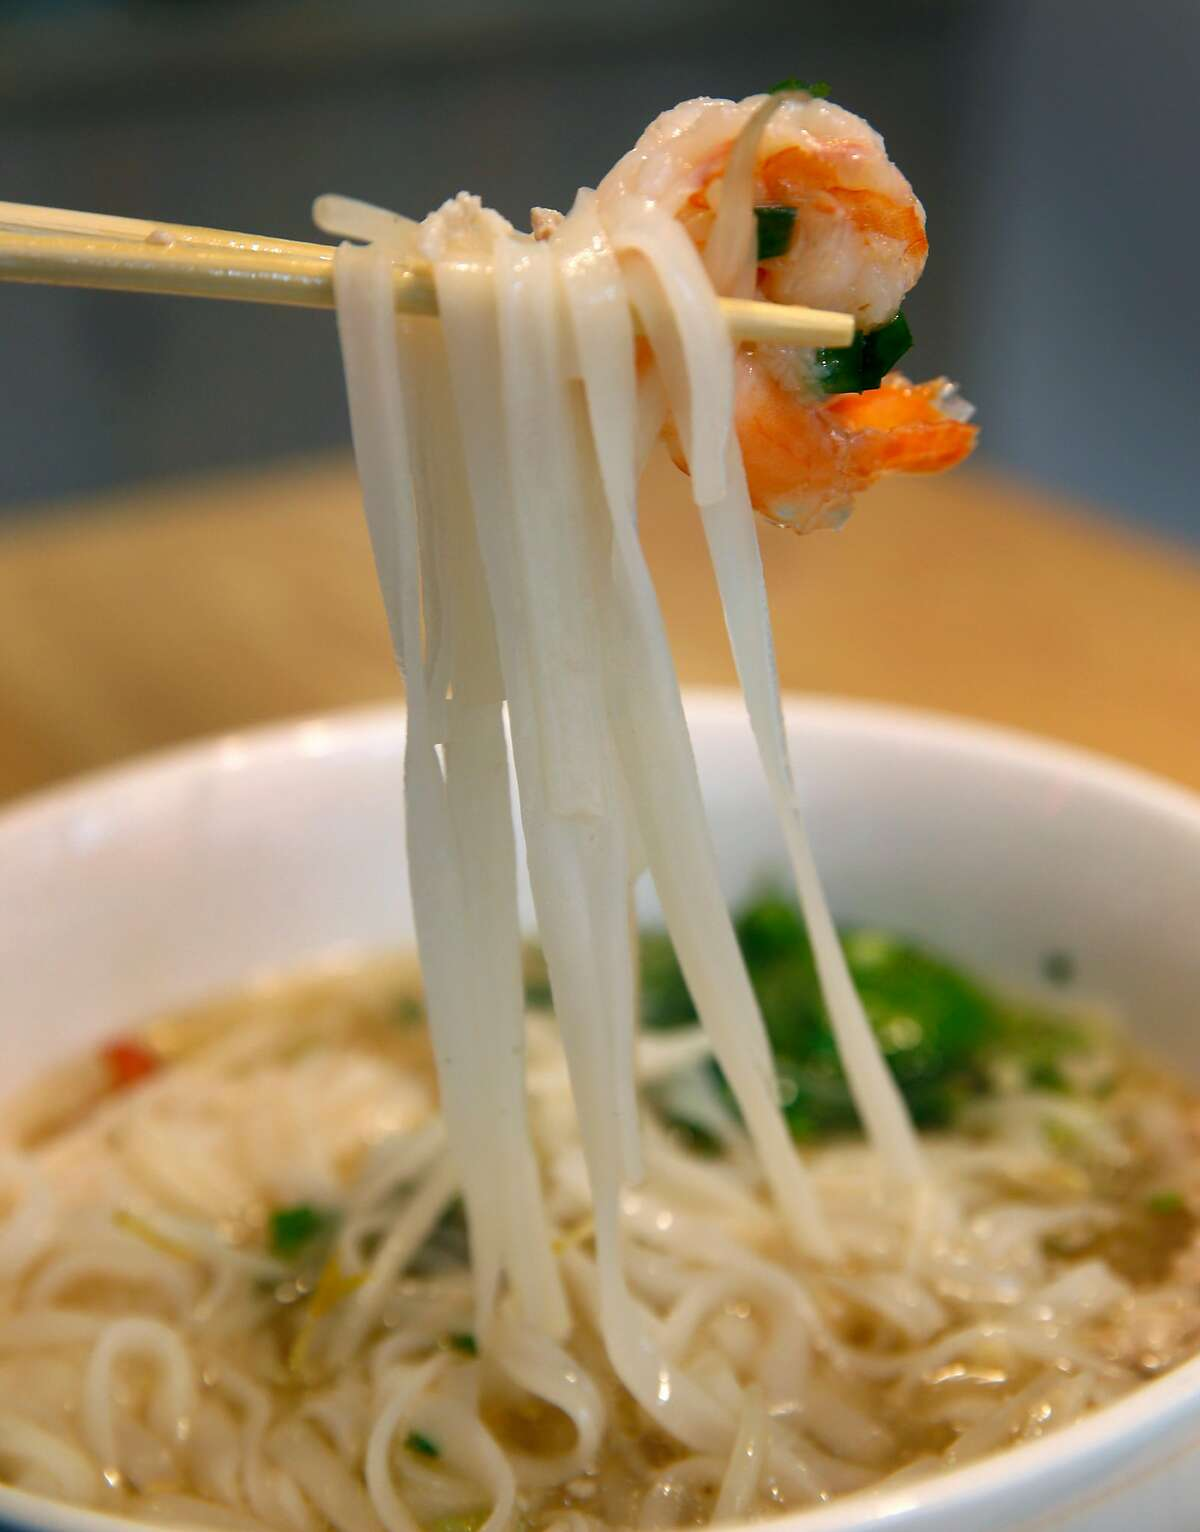 An order of the Kuy Teav Phnom Penh rice noodle soup, with minced pork and shrimp, is served at Nyum Bai Cambodian restaurant in Oakland, Calif. on Friday, Dec. 21, 2018.